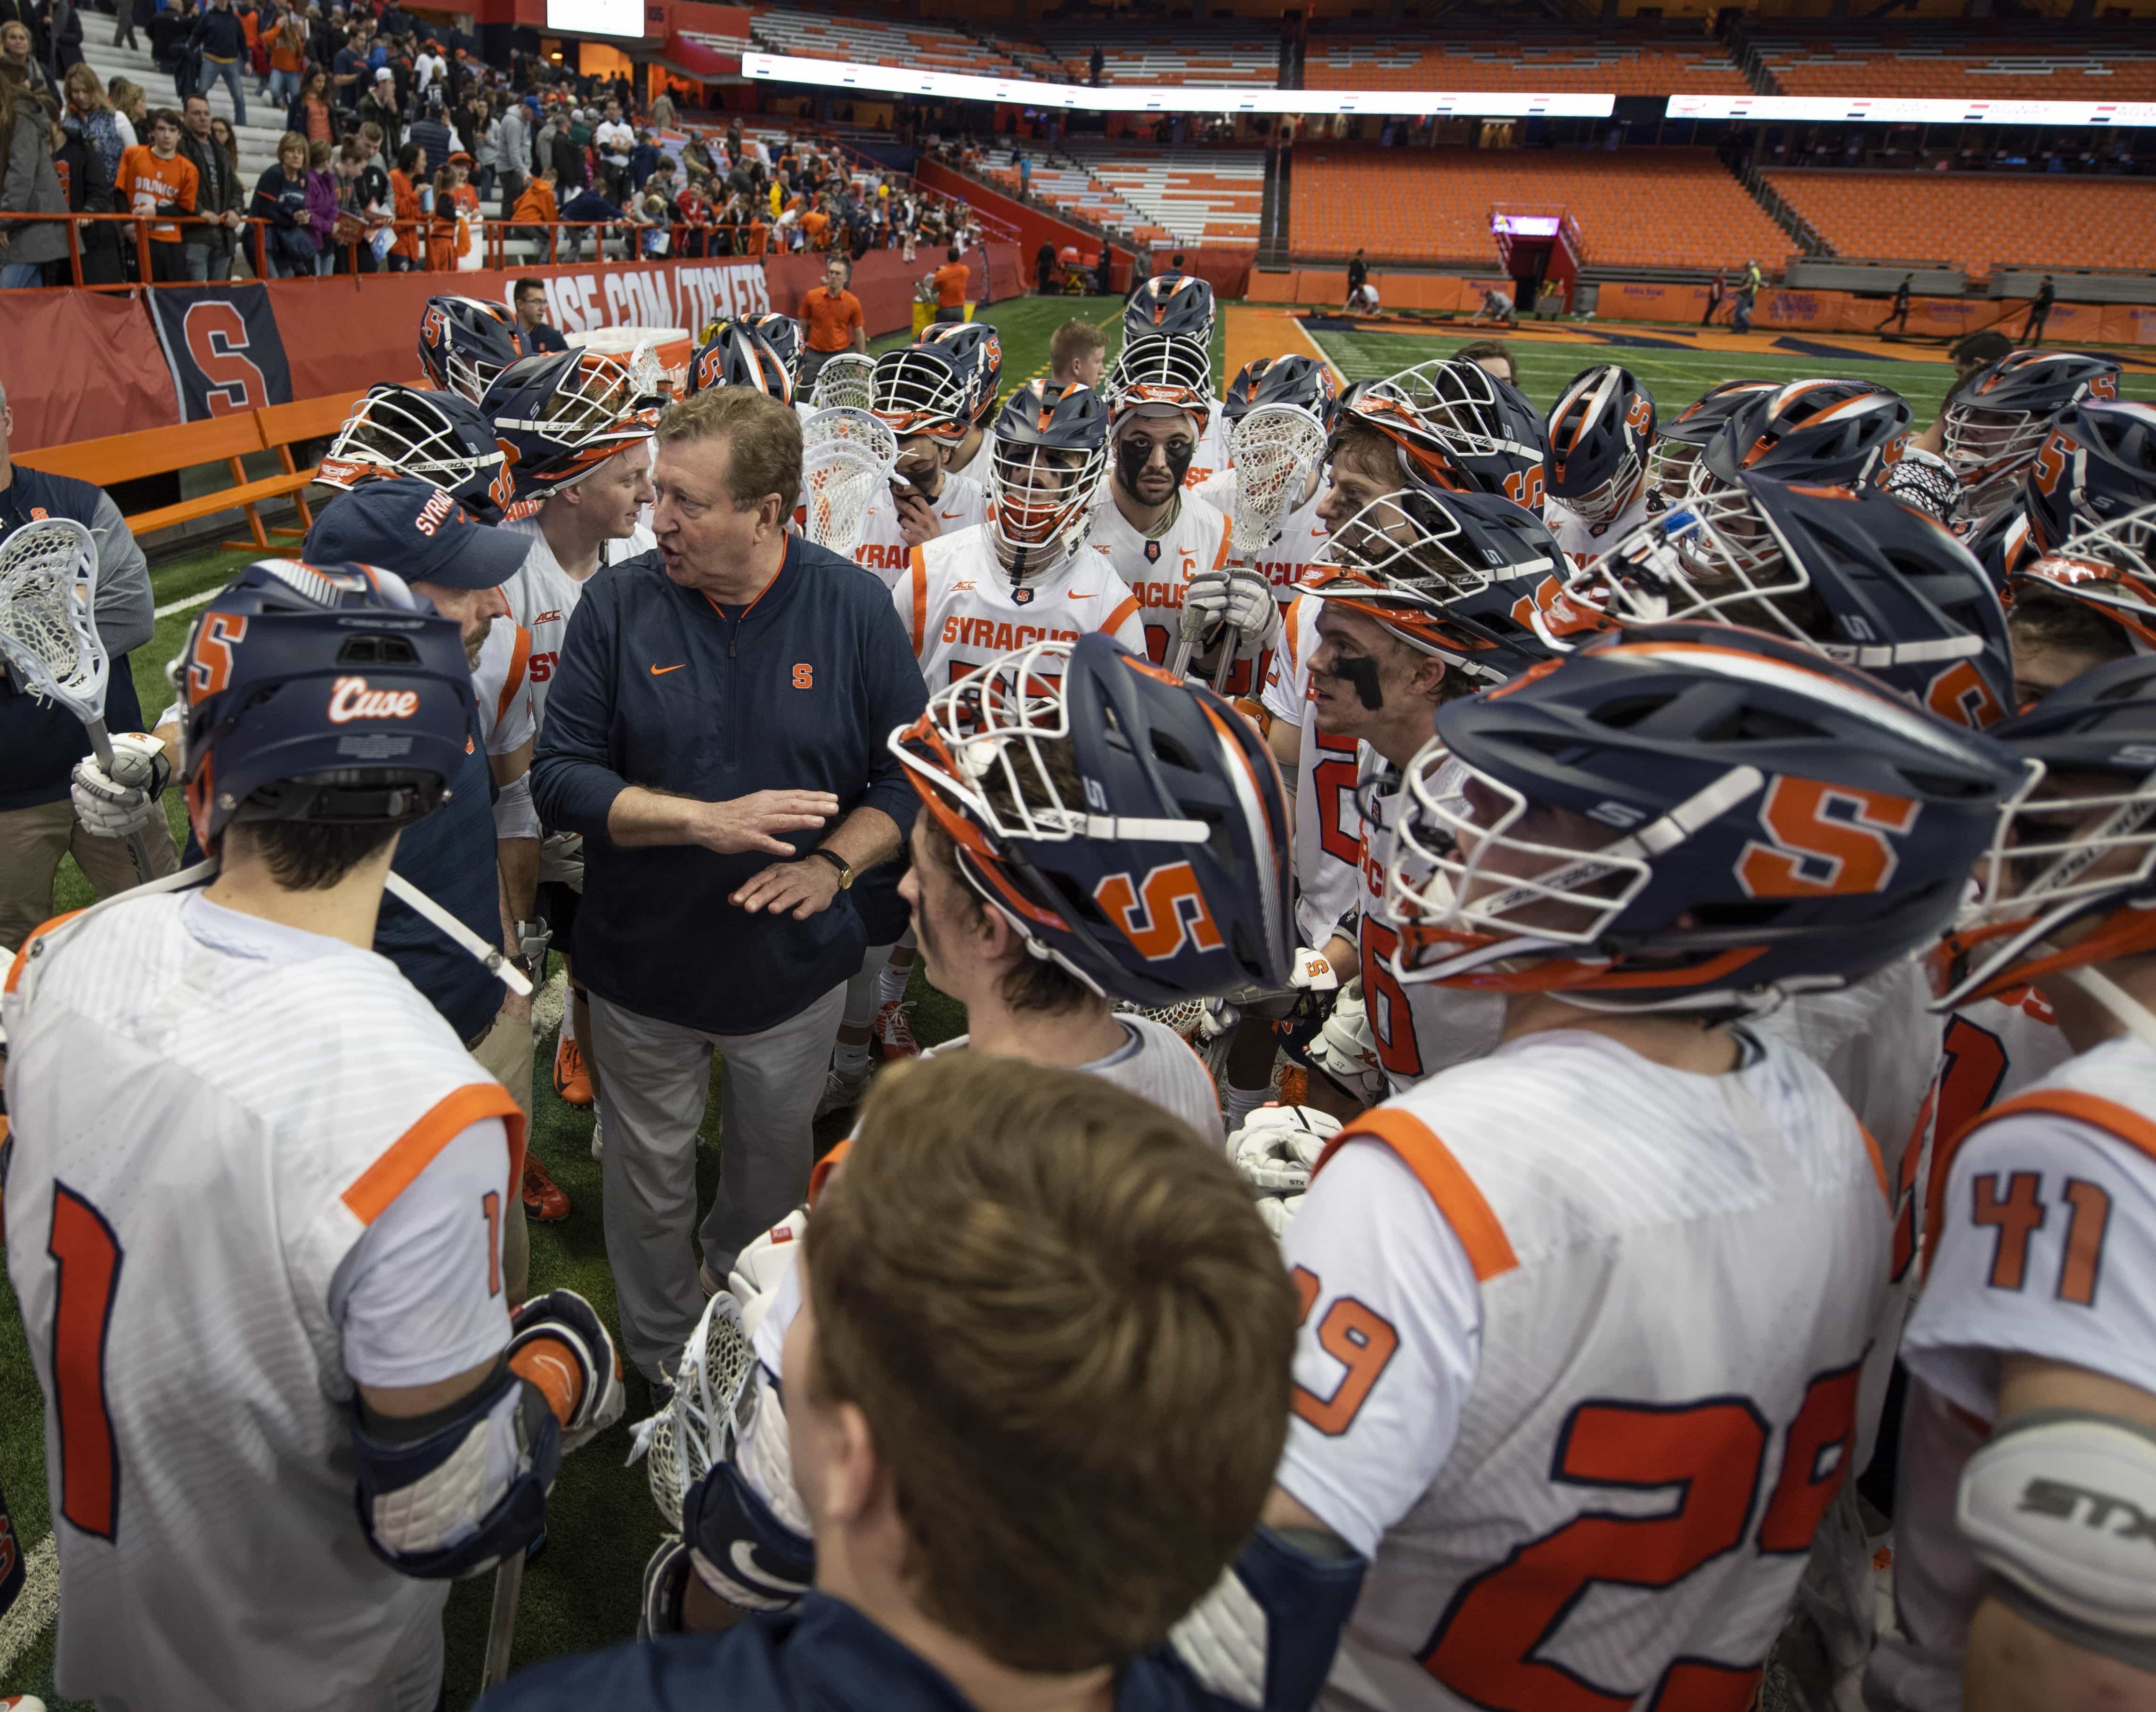 SU head coach John Desko speaks with the team after a 10-8 win over Army.